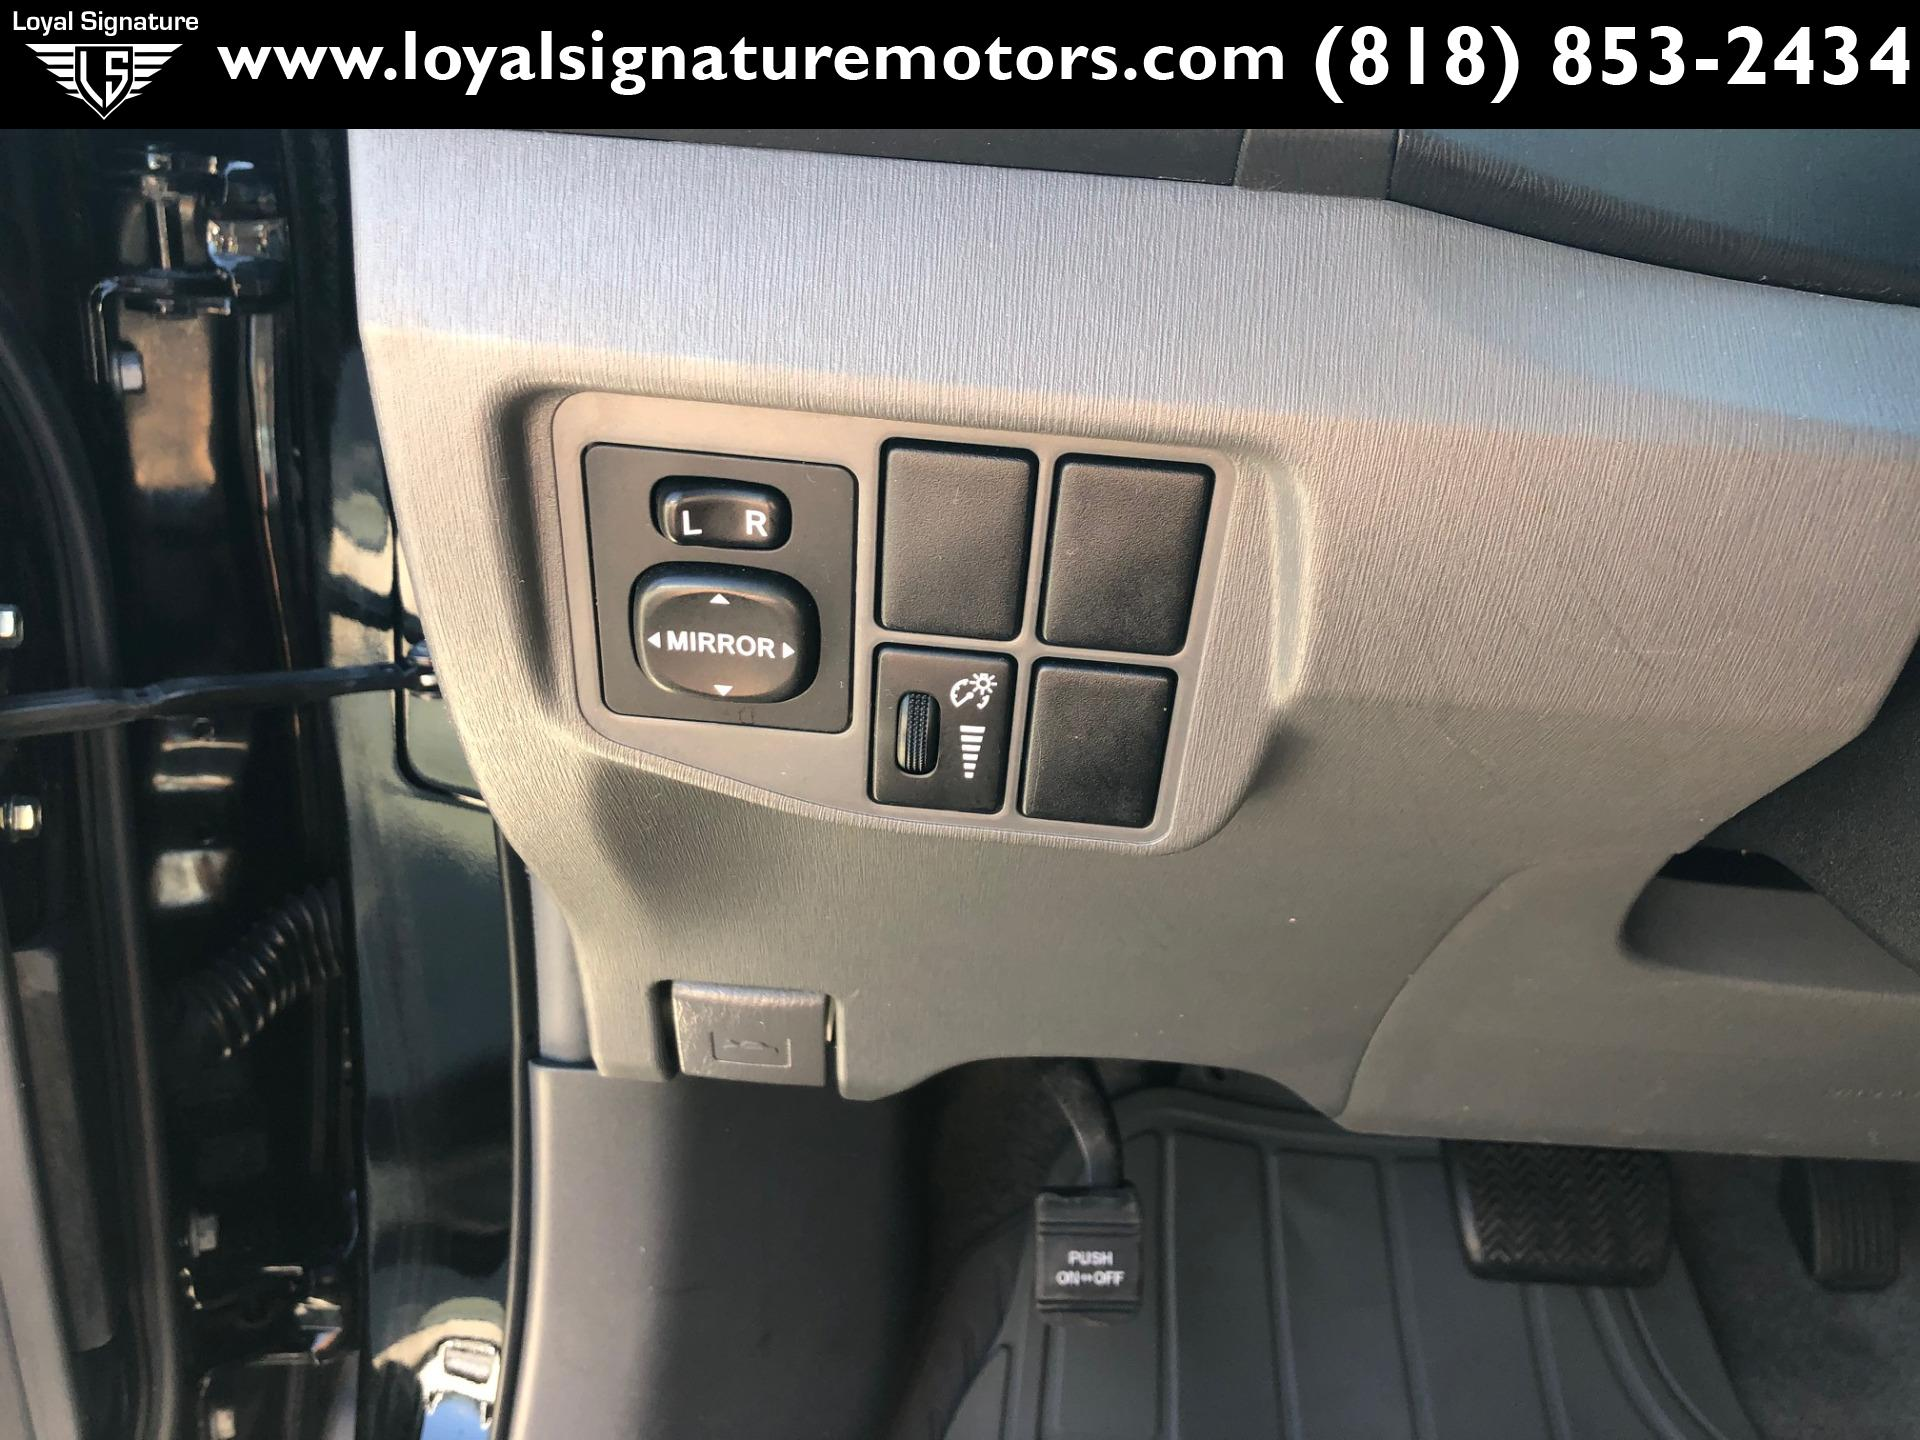 Used-2011-Toyota-Prius-Two